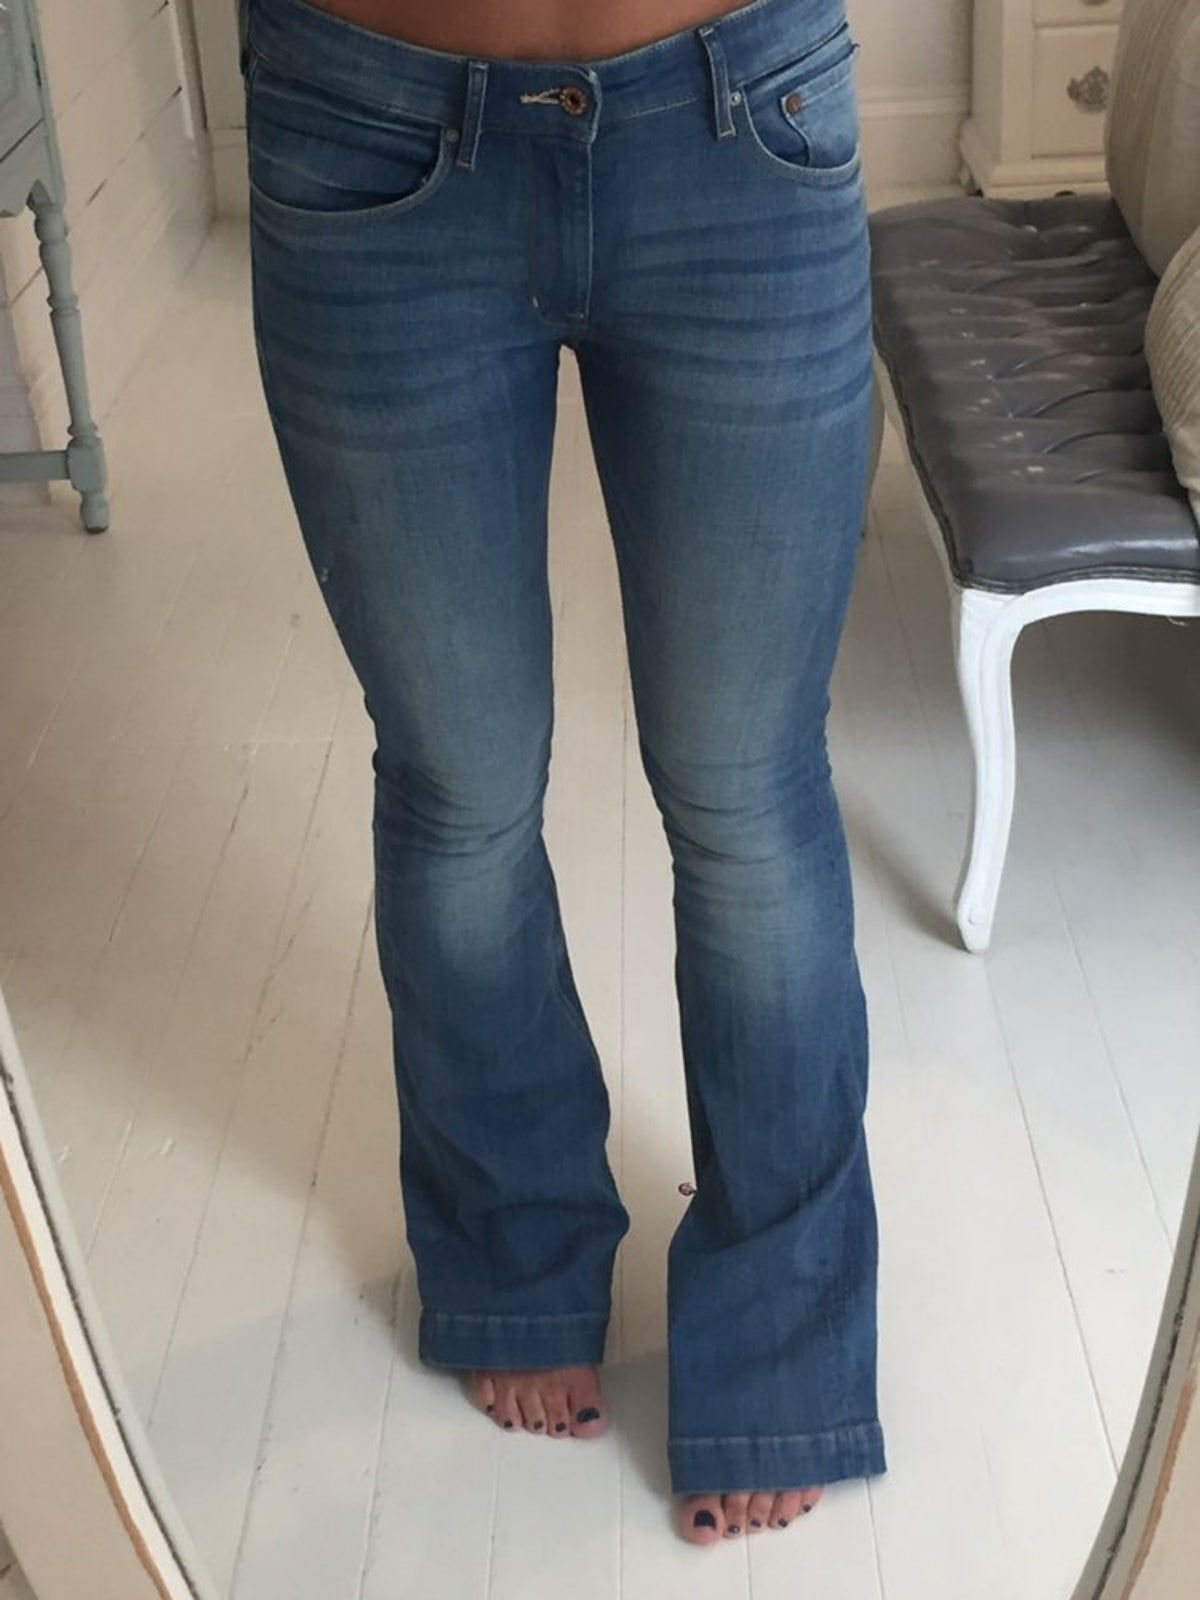 Pin By Emily Sala On Stockshow Clothes In 2020 Denim Flare Jeans Denim Flares Flare Jeans